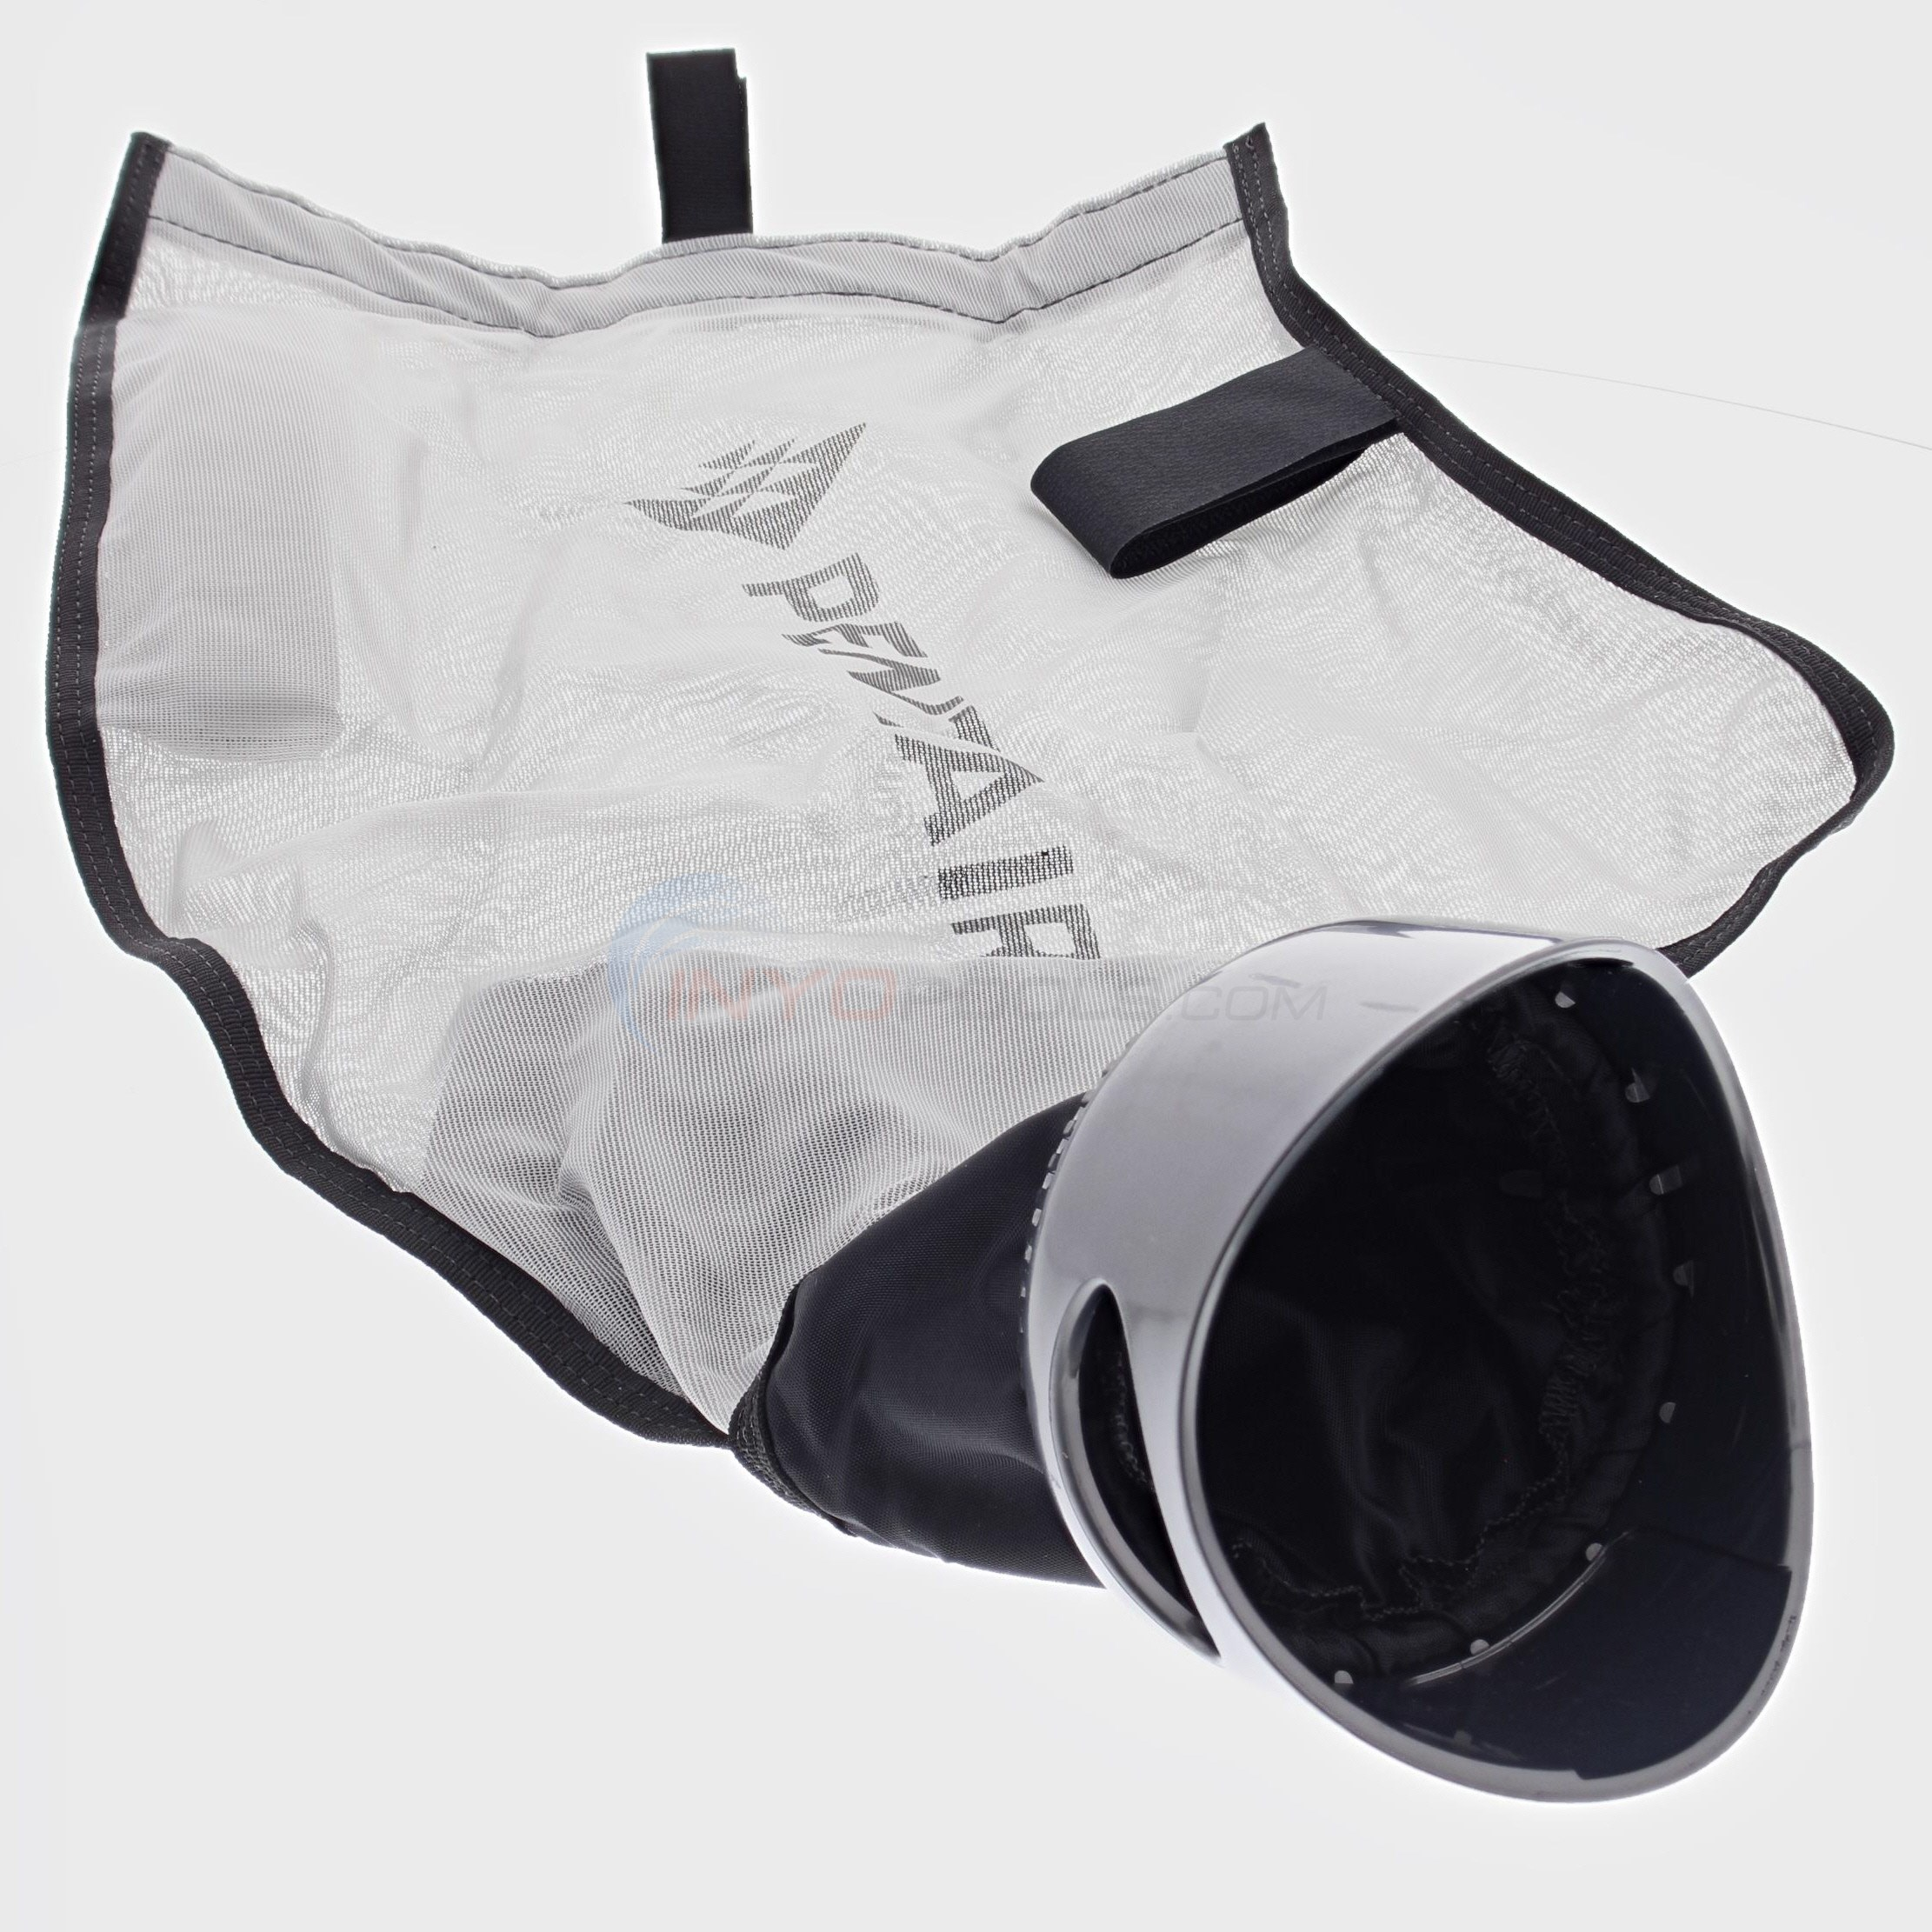 Debris Bag with Collar for Pentair Racer